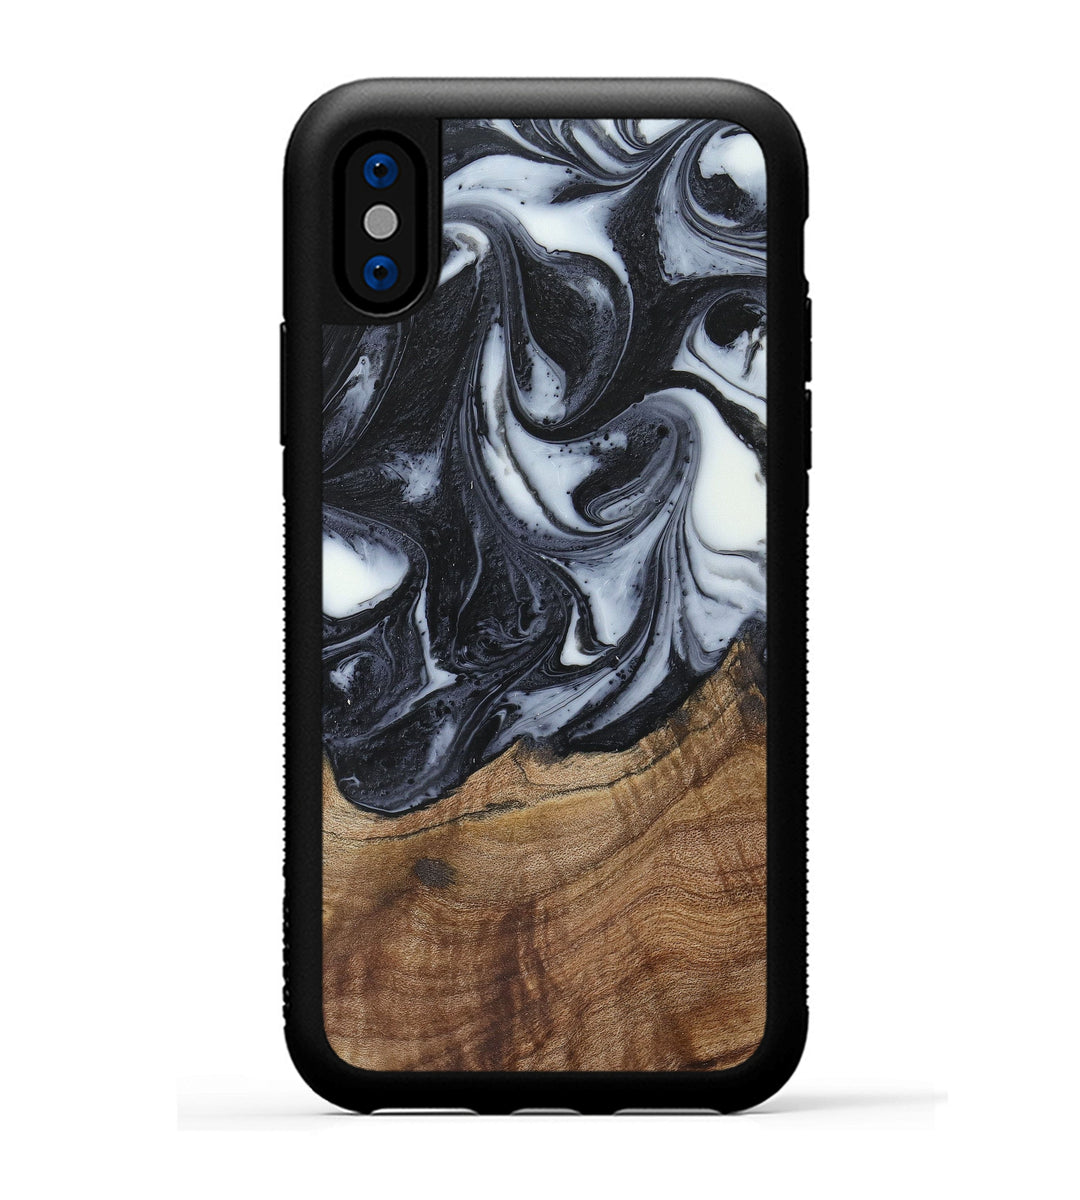 iPhone X Wood+Resin Phone Case - Christie (Black & White, 388765)